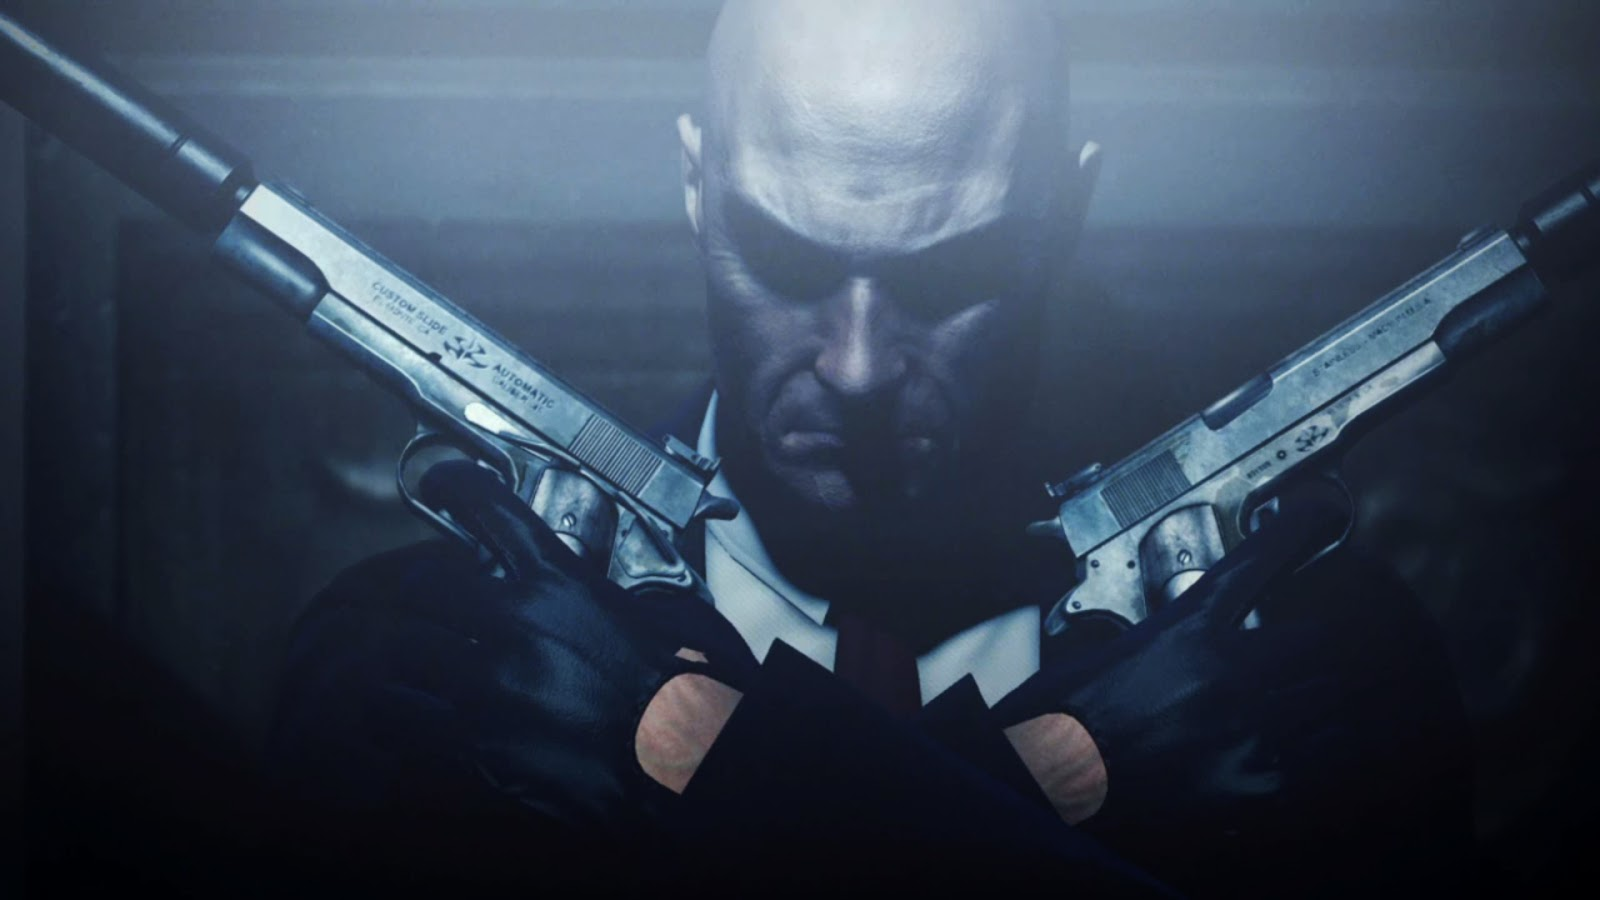 http://3.bp.blogspot.com/-7SoevmT_rSE/UNy38ILEF7I/AAAAAAAAG00/mif4rDMKAWQ/s1600/Hitman-Absolution-Game-Cross-Guns-HD-Wallpaper_Vvallpaper.Net.jpg